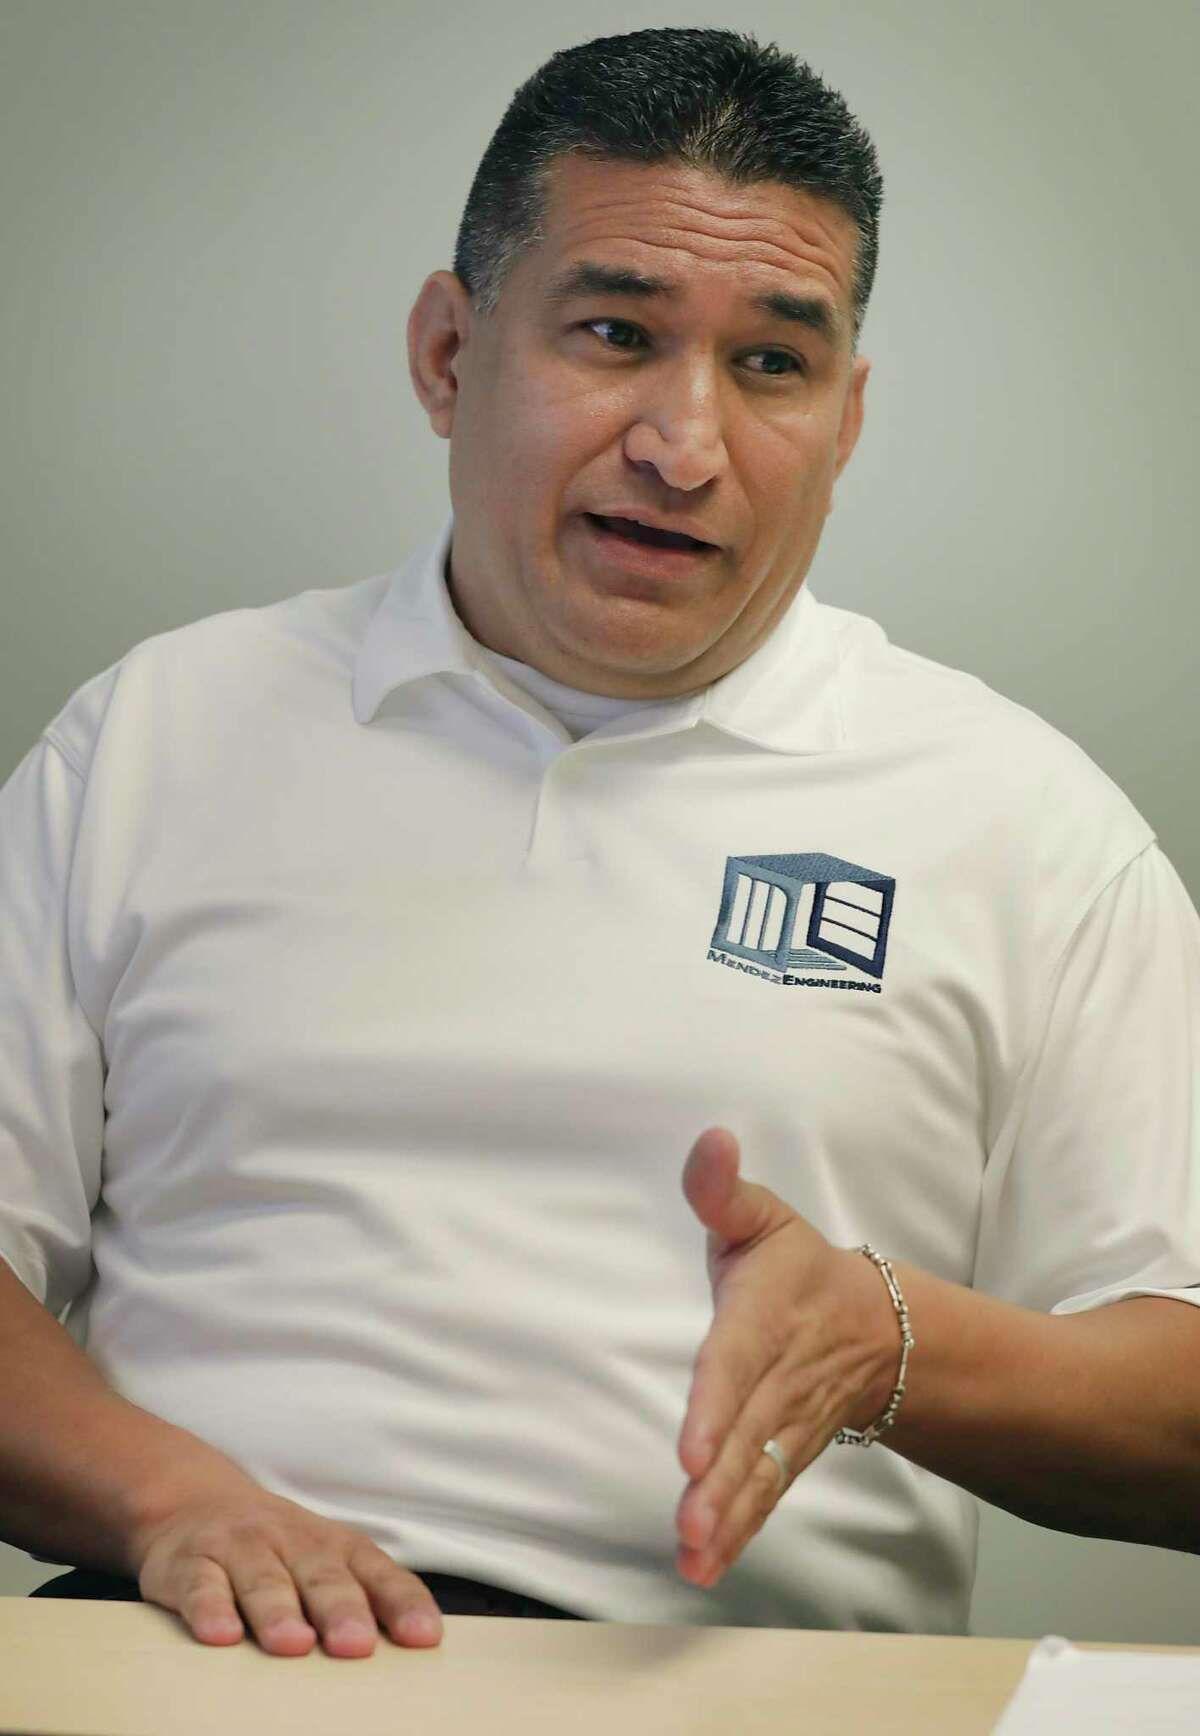 Ray Mendez's business, Mendez Engineering, takes on projects for municipal agencies such as CPS Energy and SAWS.